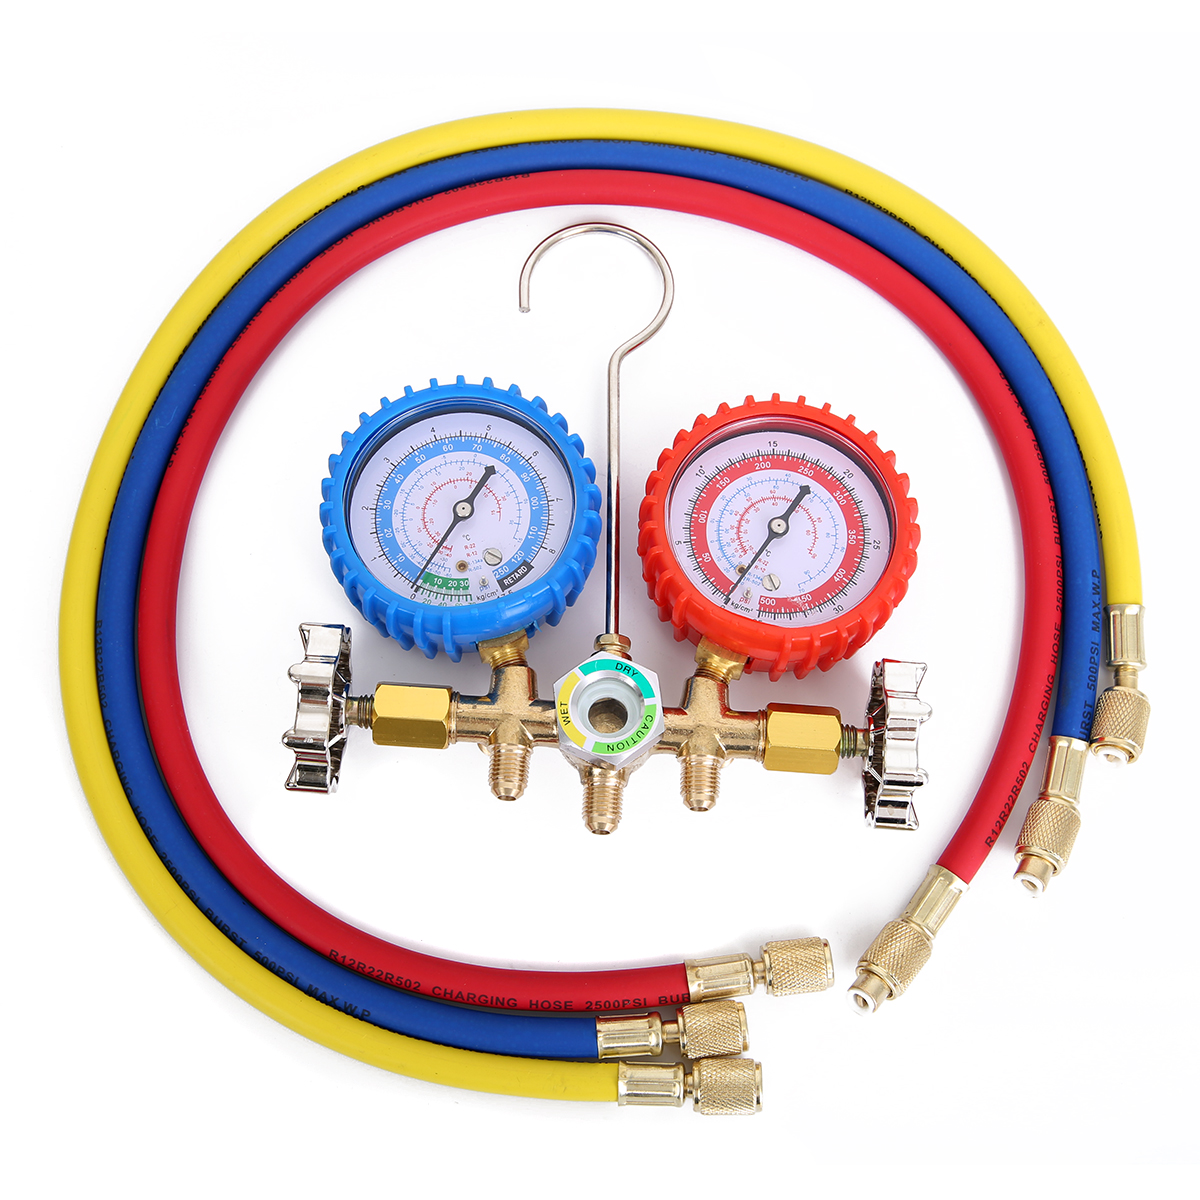 1/2PT Aluminum Alloy Manifold Gauge with Cable Set For R134A R12 R22 R404z Air Condition Refrigeration1/2PT Aluminum Alloy Manifold Gauge with Cable Set For R134A R12 R22 R404z Air Condition Refrigeration